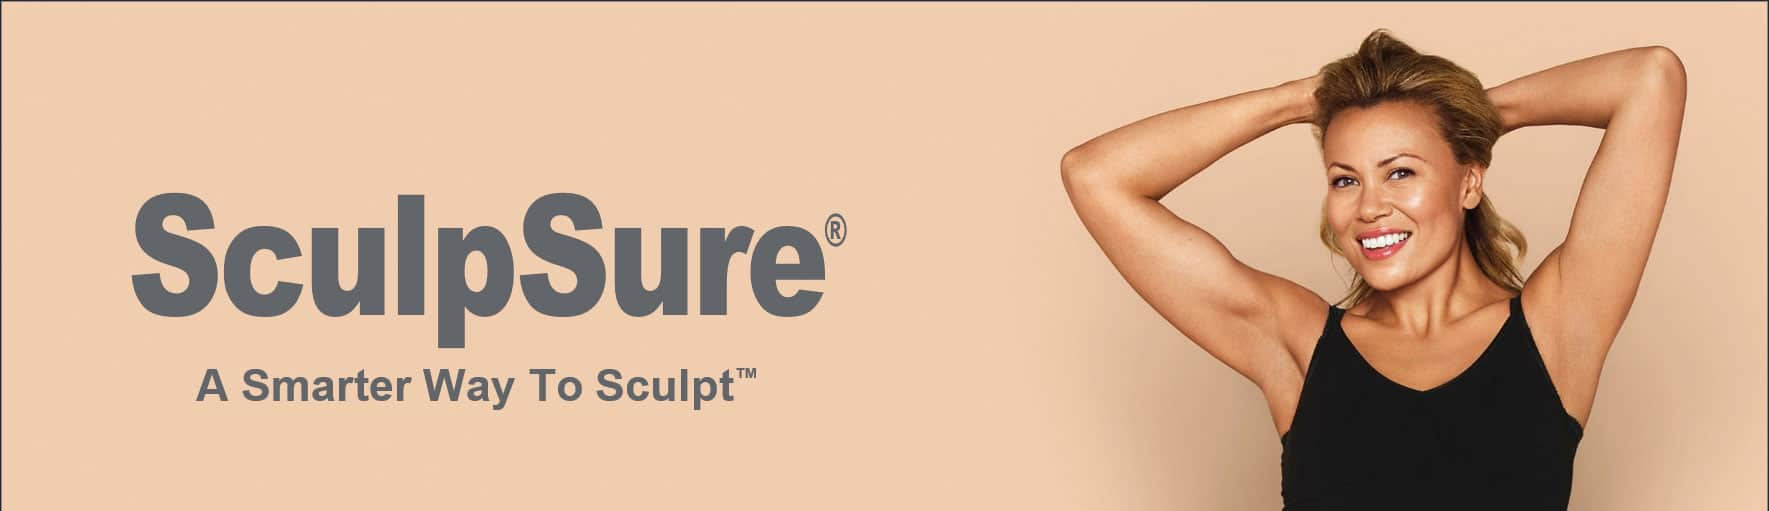 SculpSure header